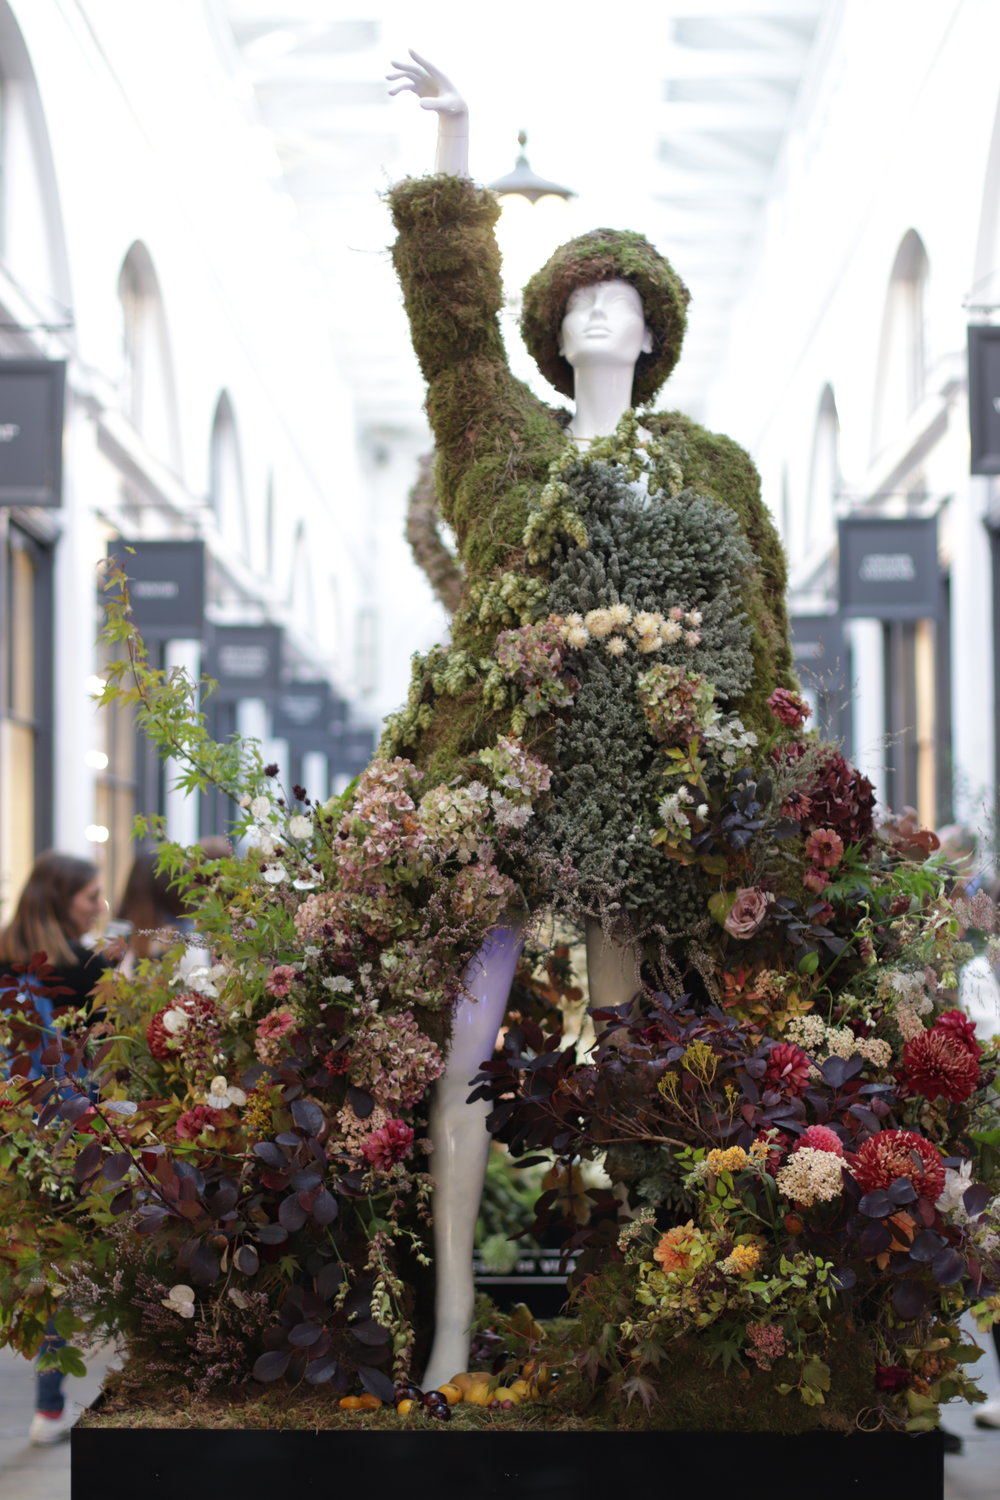 Seasonally dressed mannequin for 'Jardin Blanc' and 'Fleurs de Villes@ at the Chelsea Flower Show in Covent Garden 2018.